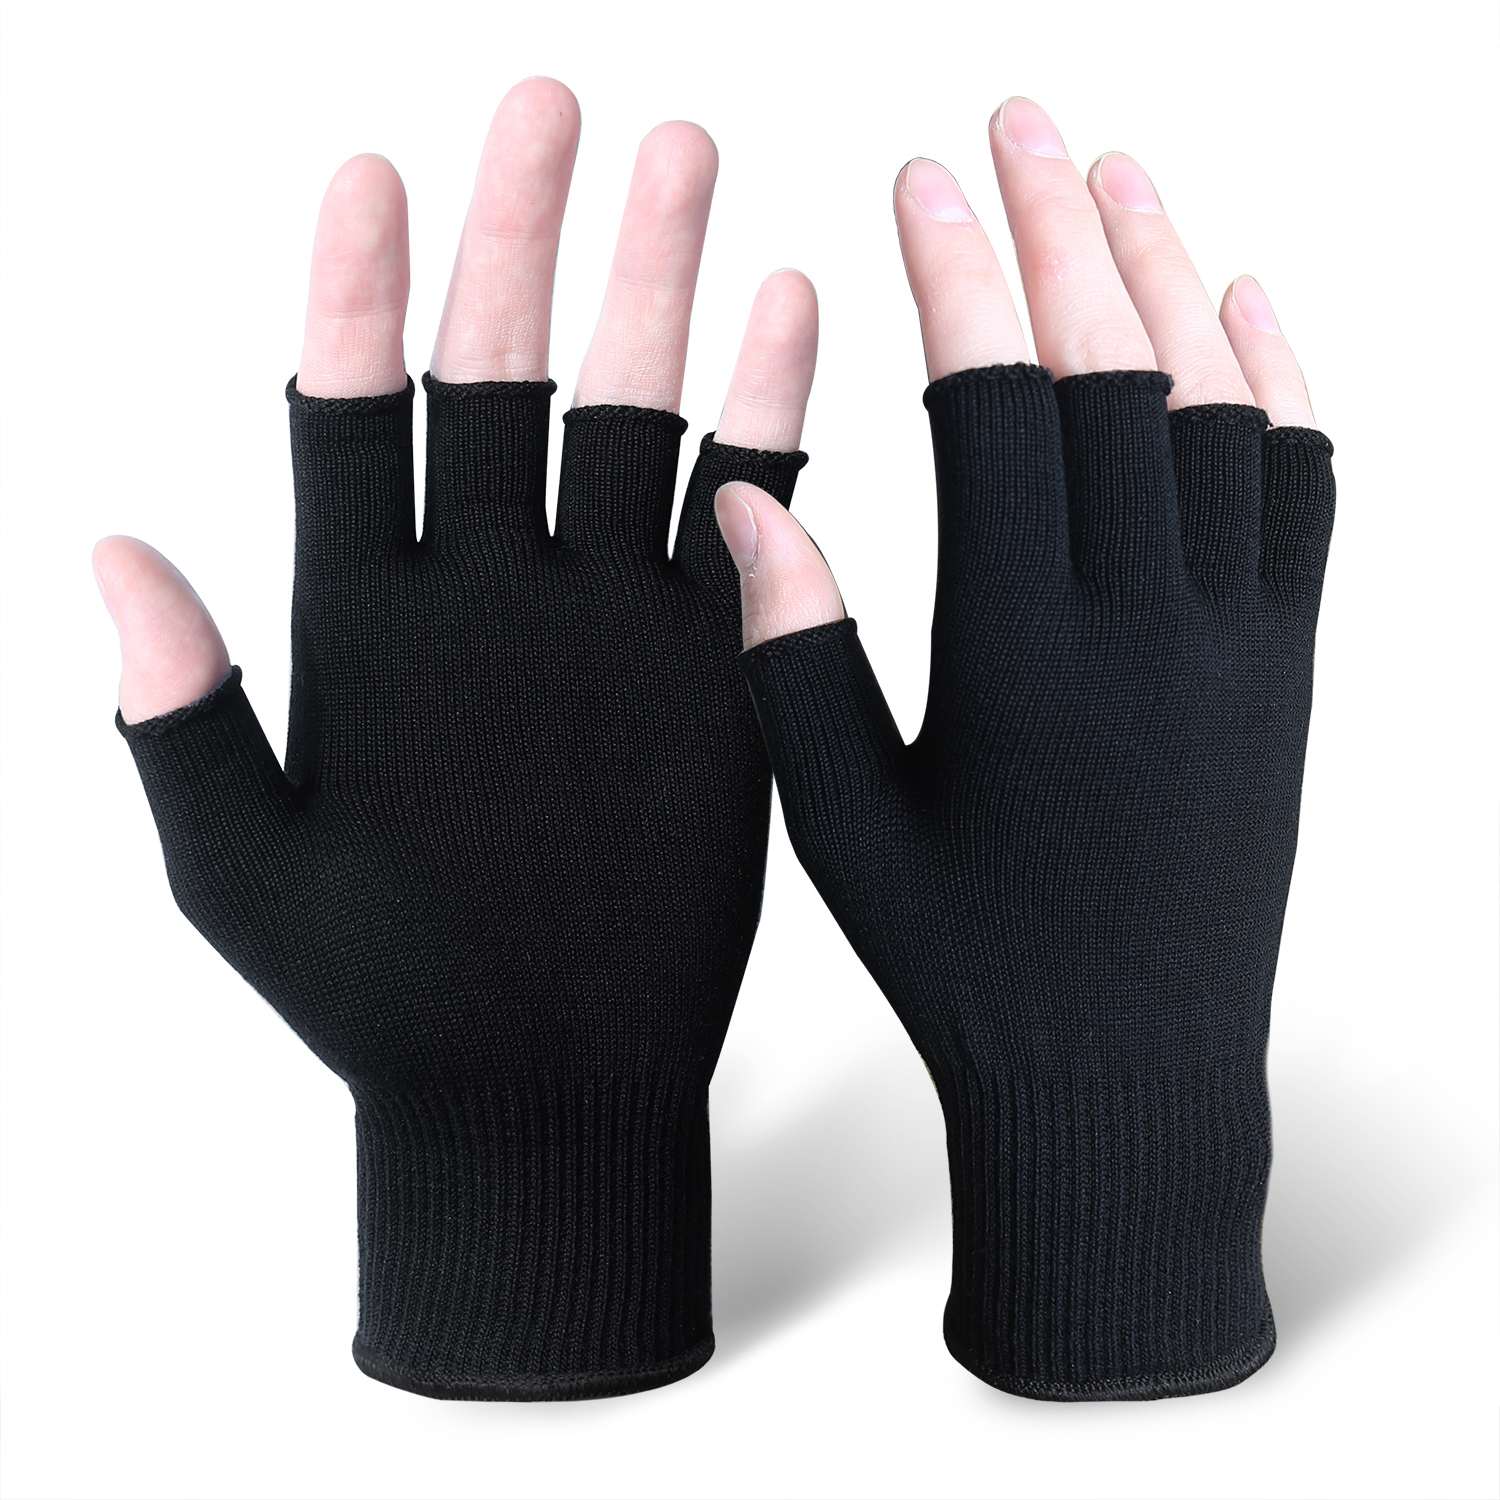 Black Silk Fingerless Gloves for Liner/MWG-008